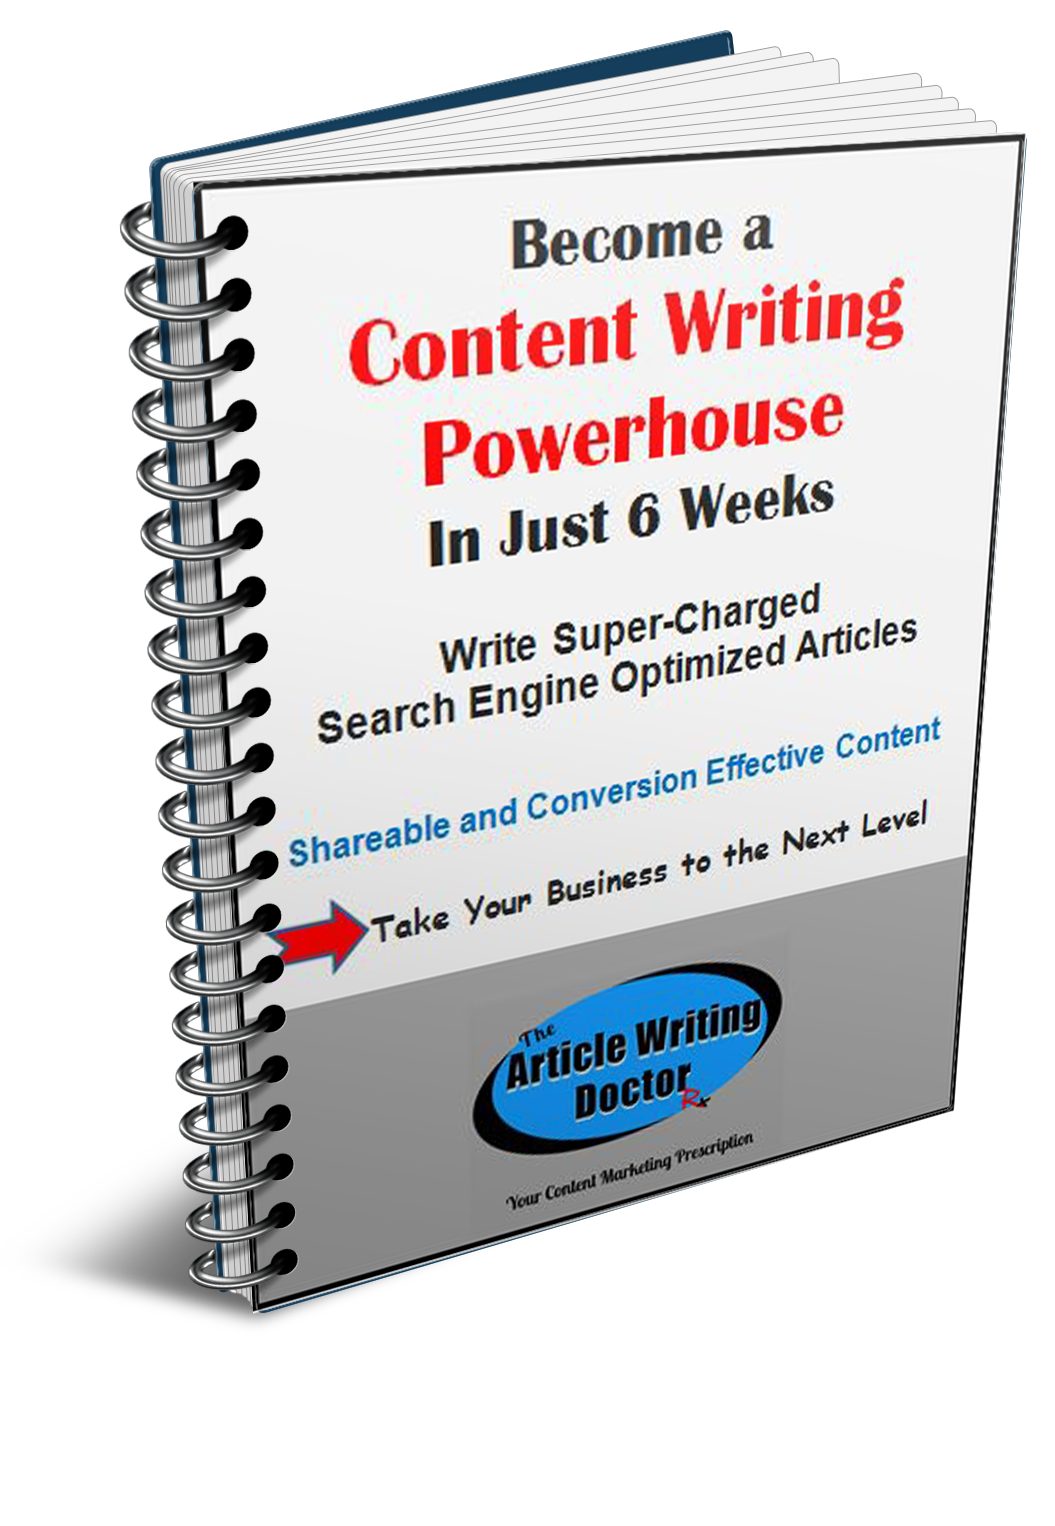 Become a Content Writing Powerhouse in Just 6 Weeks